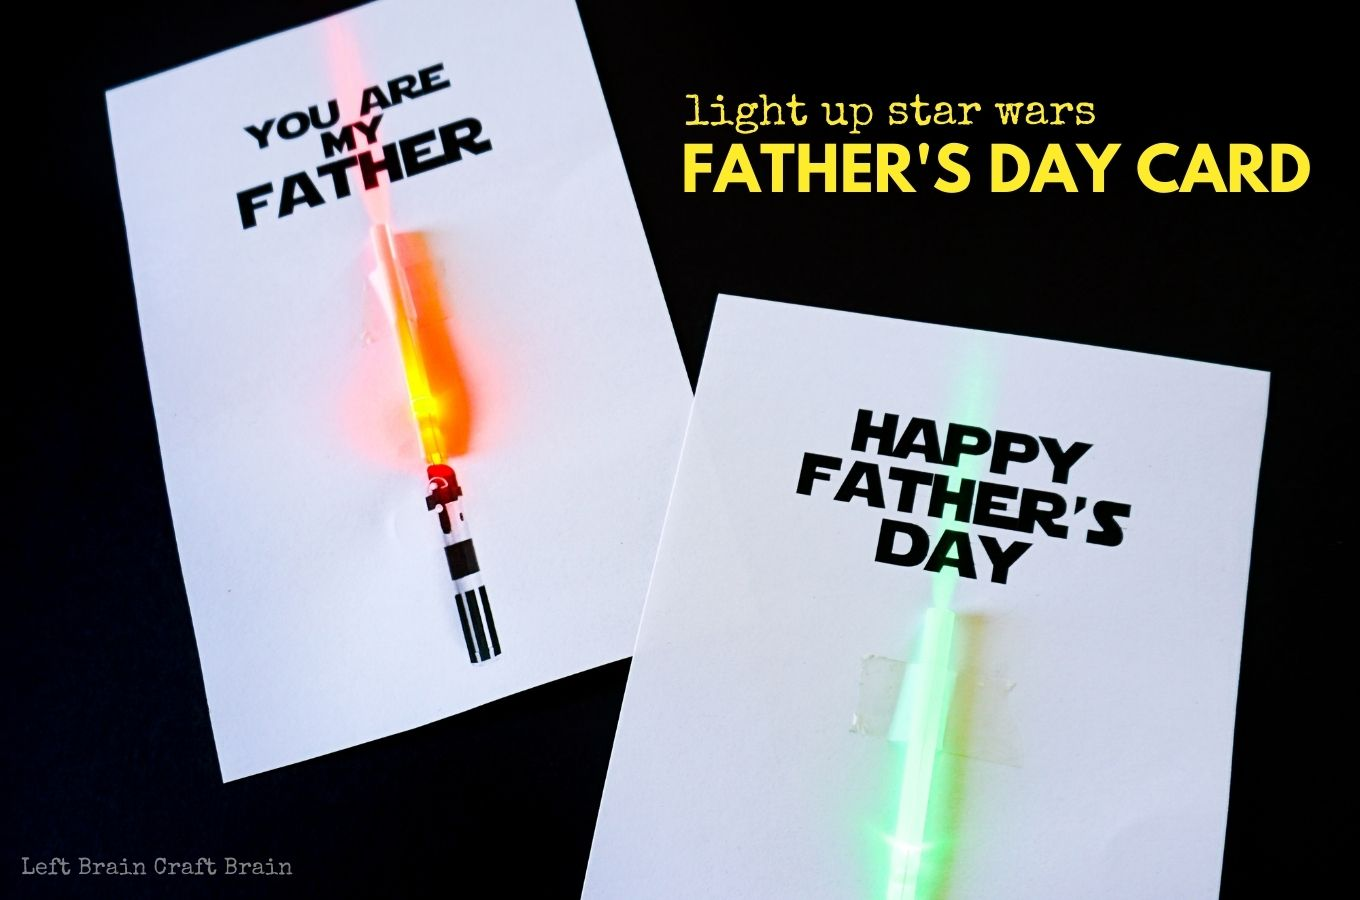 light up star wars fathers day card 1360x900